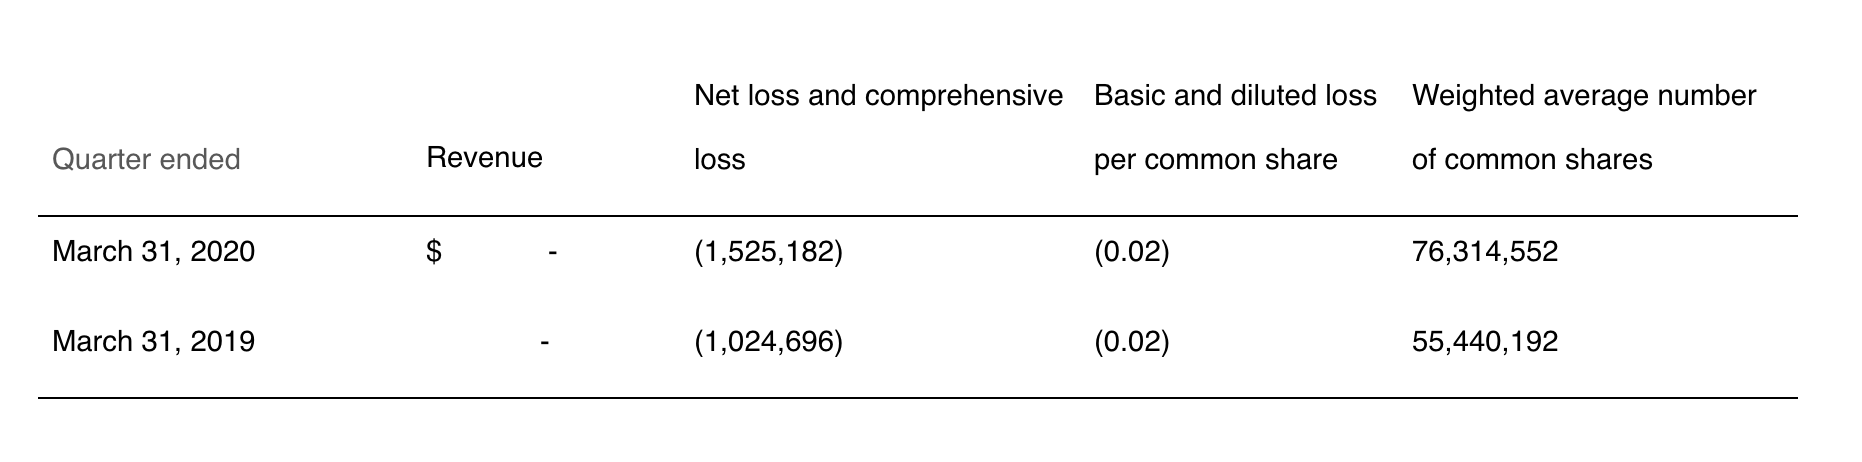 Table of Exro Technologies' financial data, comparing first quarters of 2020 and 2019.